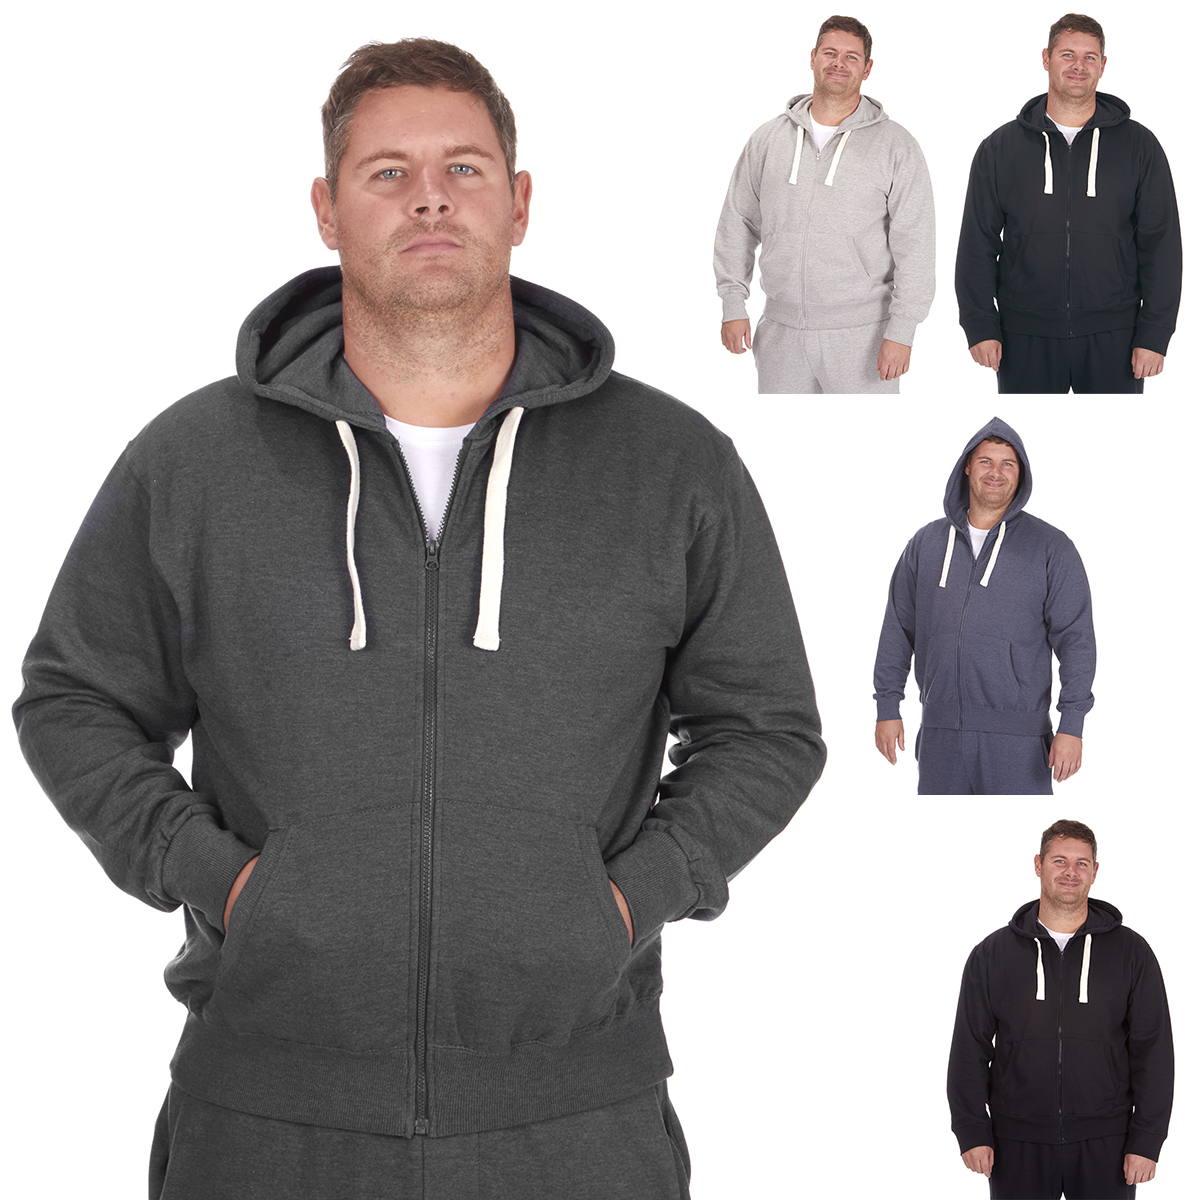 78102e0ff60 Men s Plus Size Hoodie Pullover Jacket Basic Plain Casual Hoody Size  3XL-6XL UK